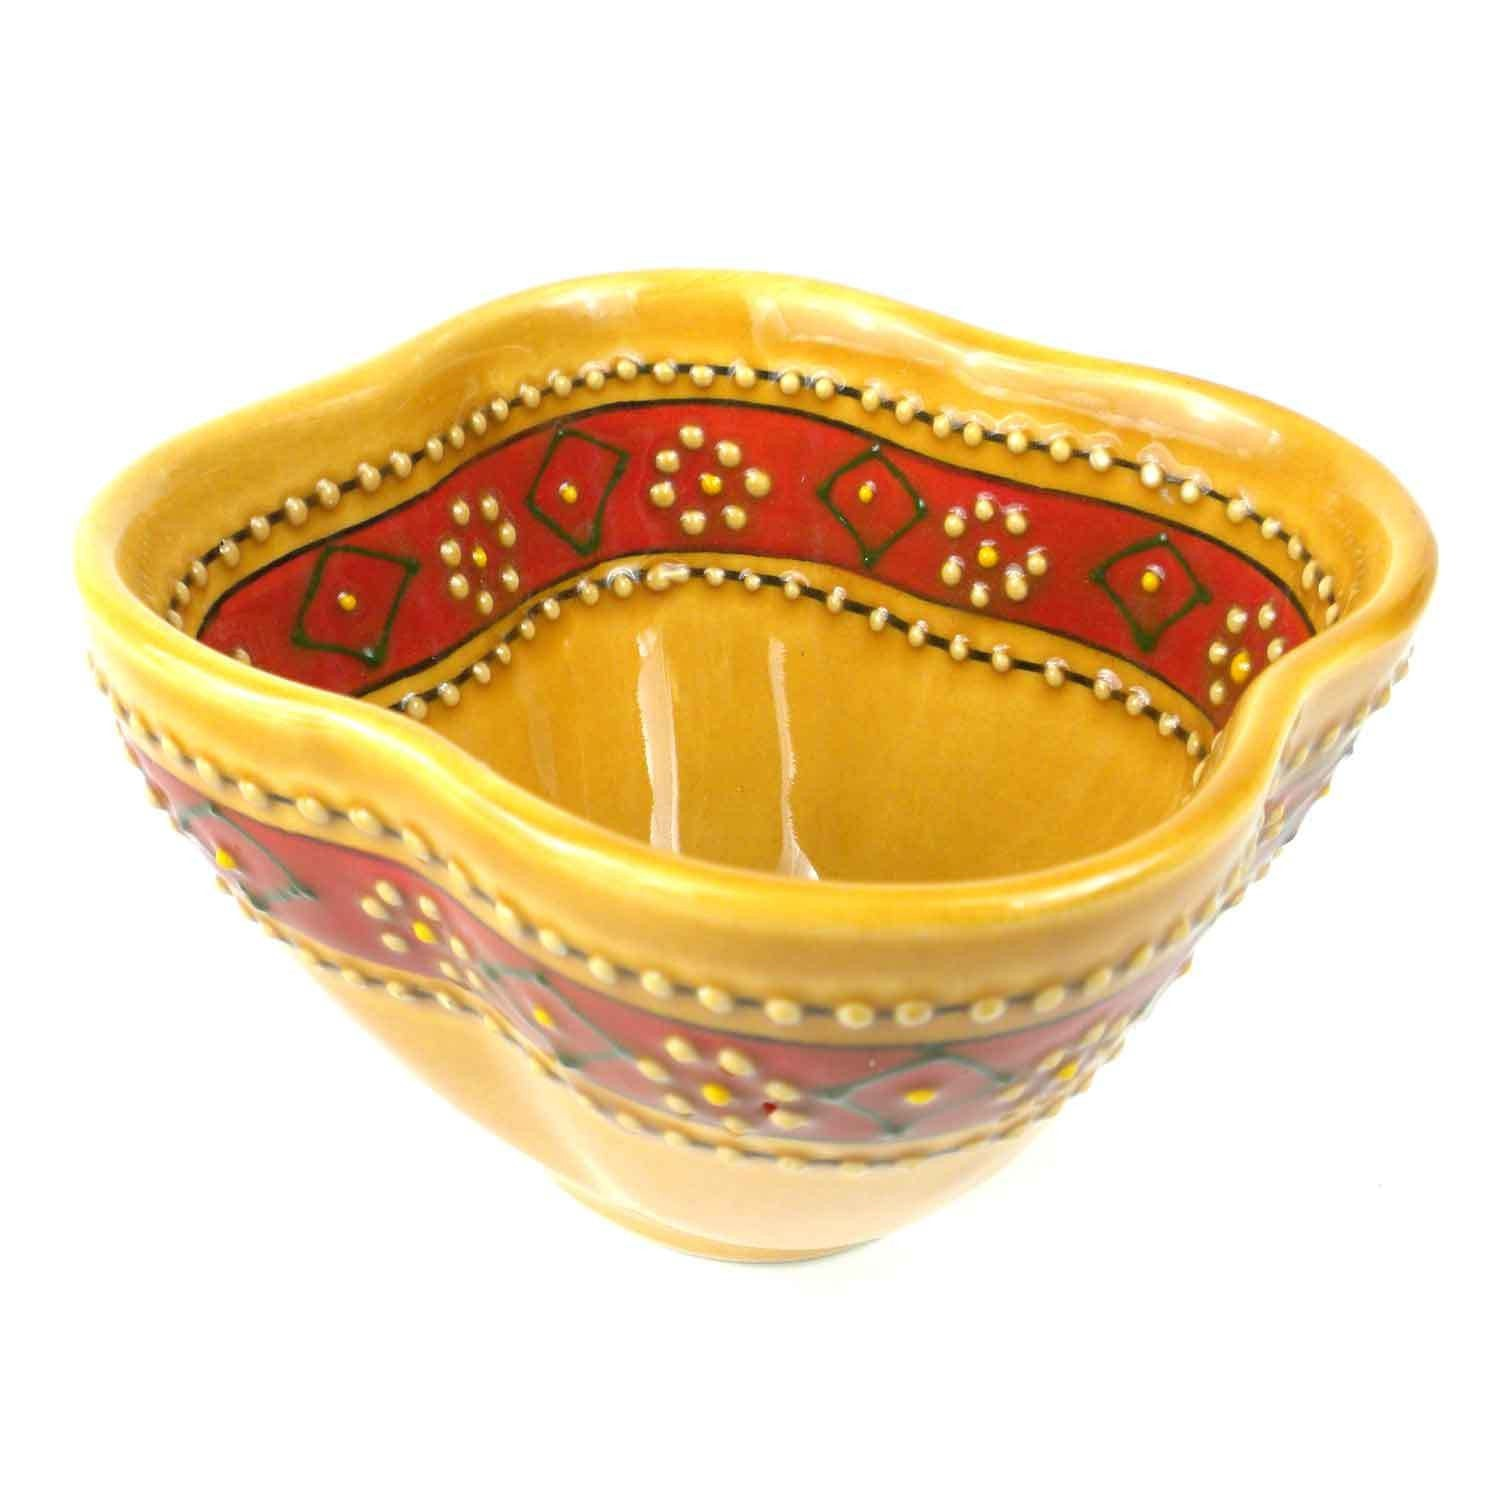 Hand-painted Dip Bowl in Honey Handmade and Fair Trade